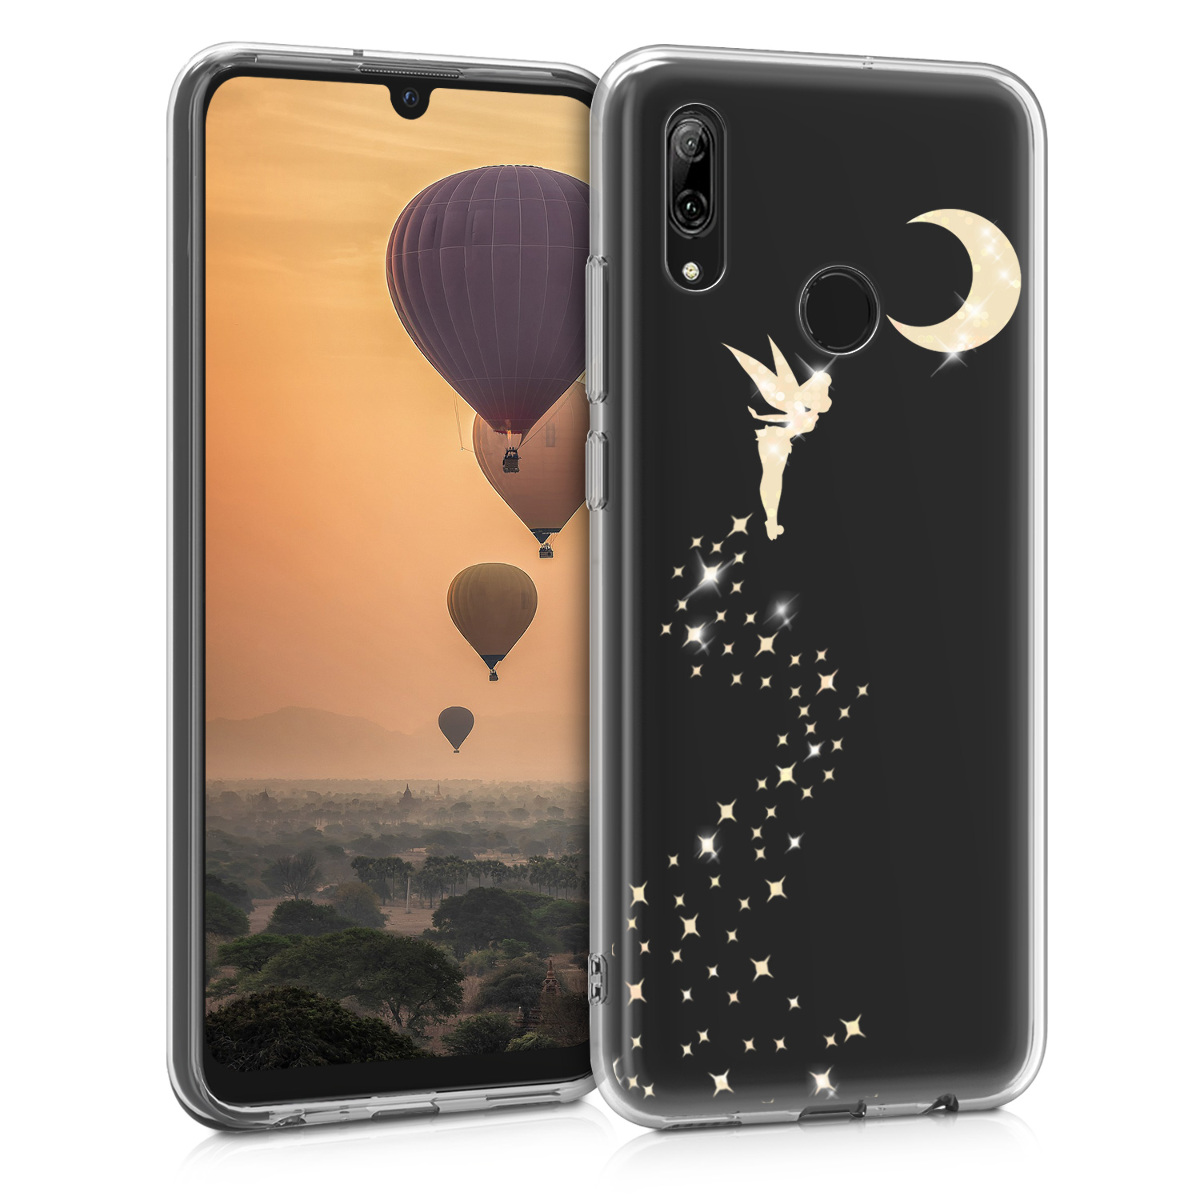 KW Θήκη Σιλικόνης Huawei P Smart 2019 - Gold / Transparent (47389.20)